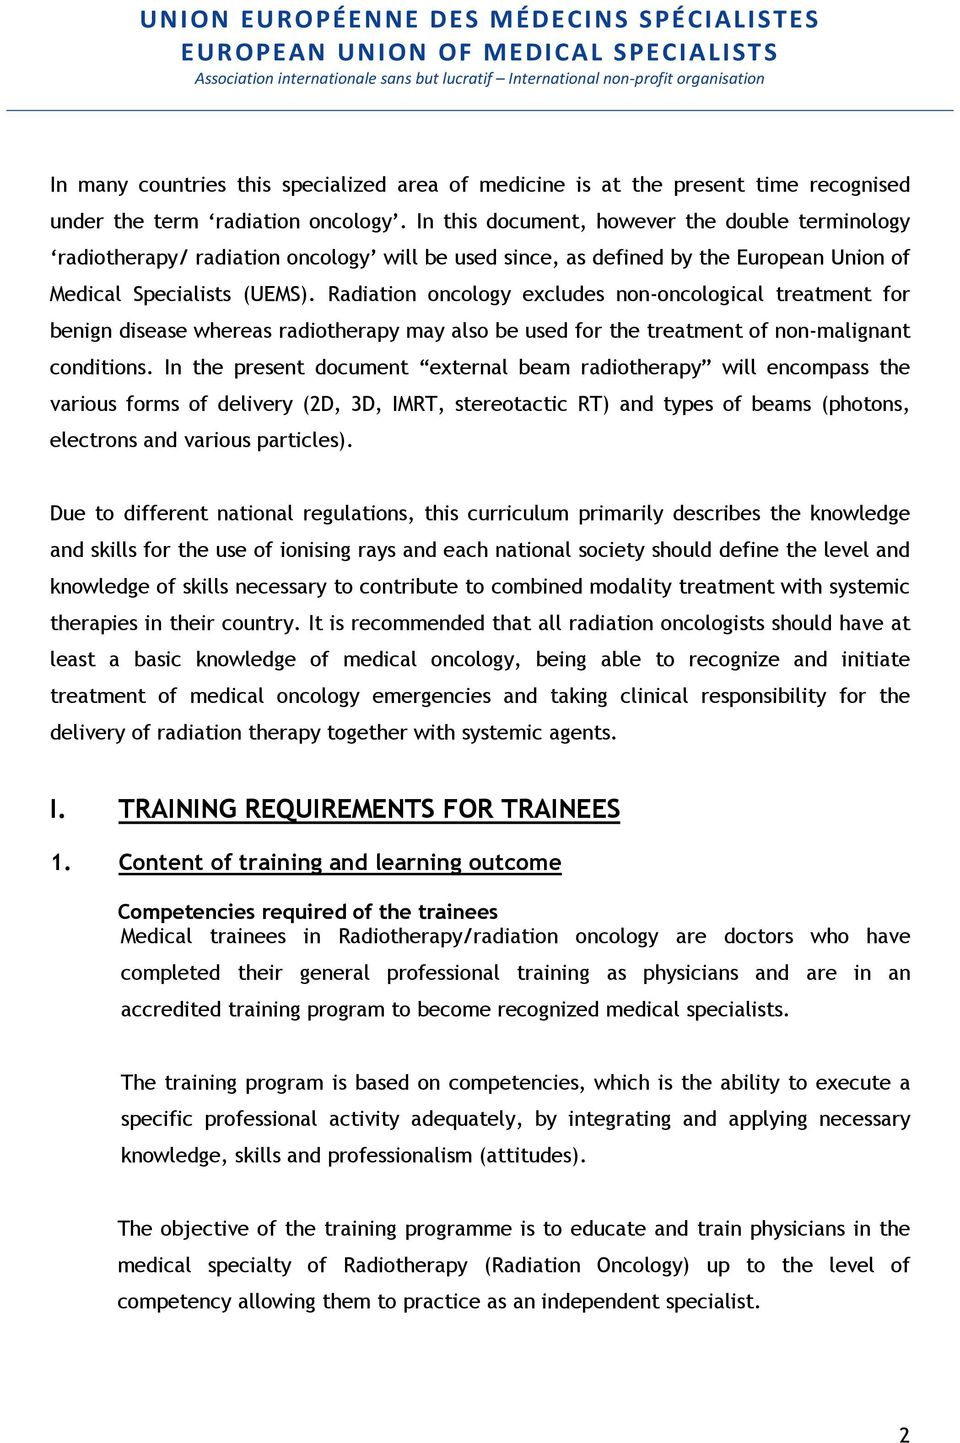 Training Requirements for the Specialty of Radiation